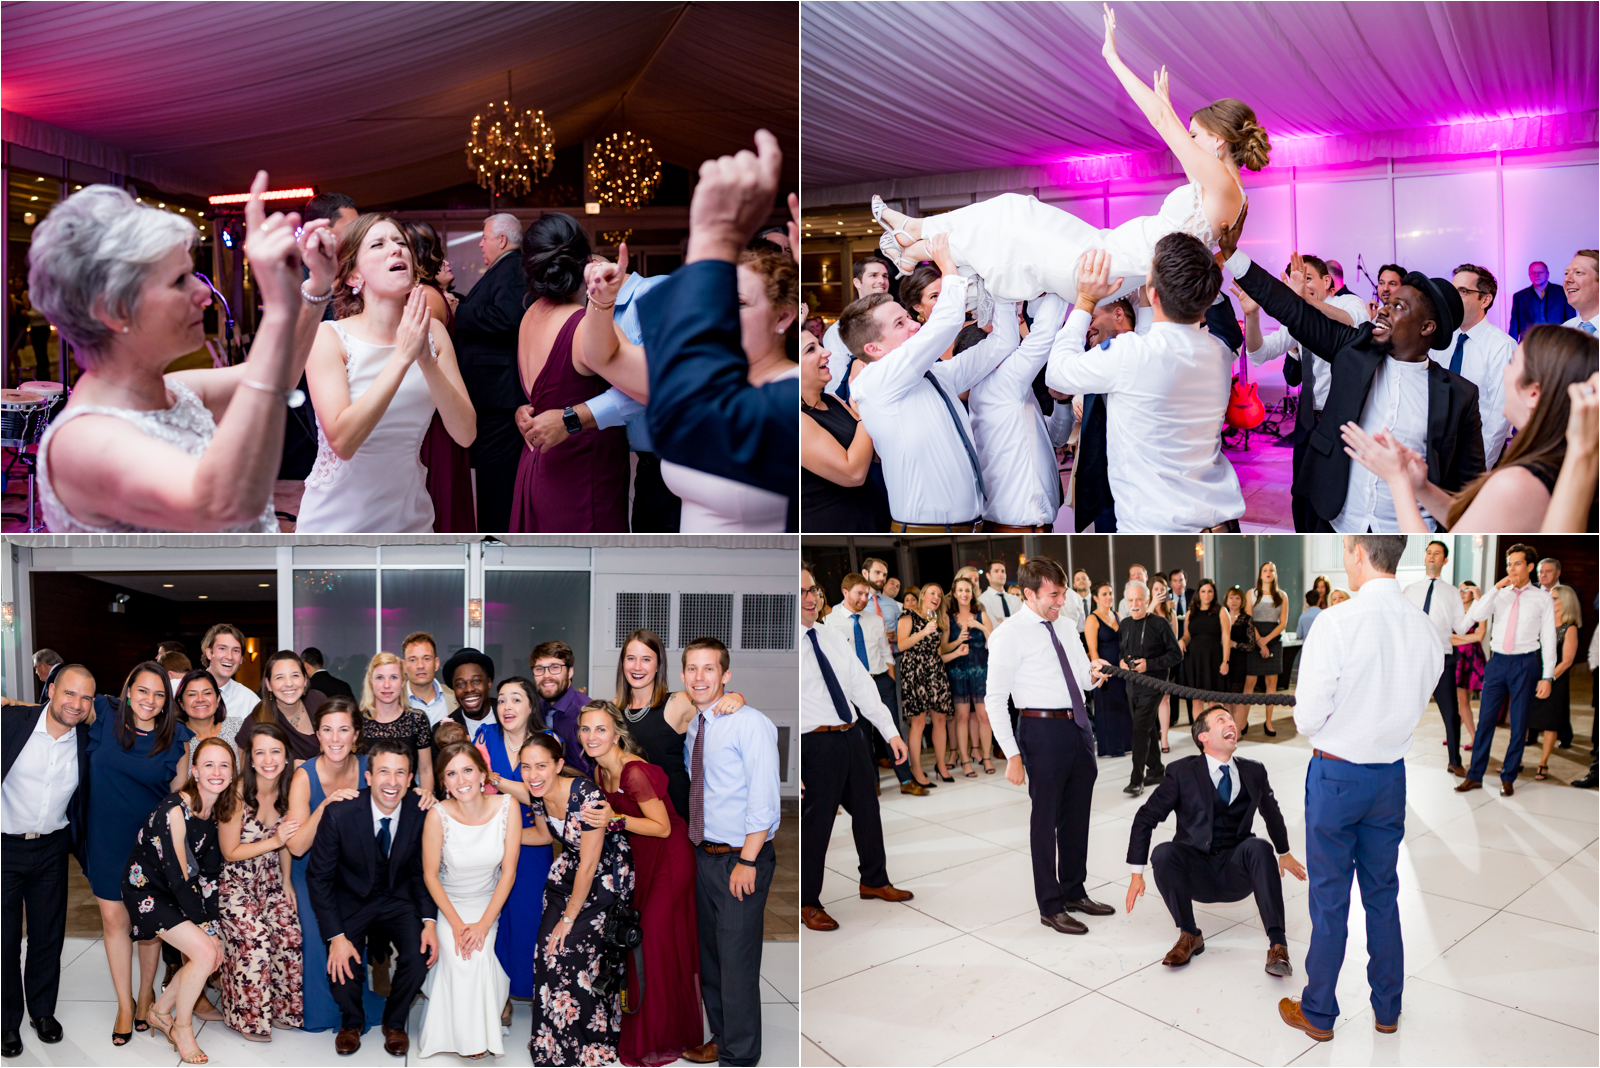 wedding-day-destination wedding photographer-destination-photographer-chicago-illinois-malone-bubman-galleria-marchetti-jessica-capozzola-focus-on-joy-photography-bride-groom-reception-dancing